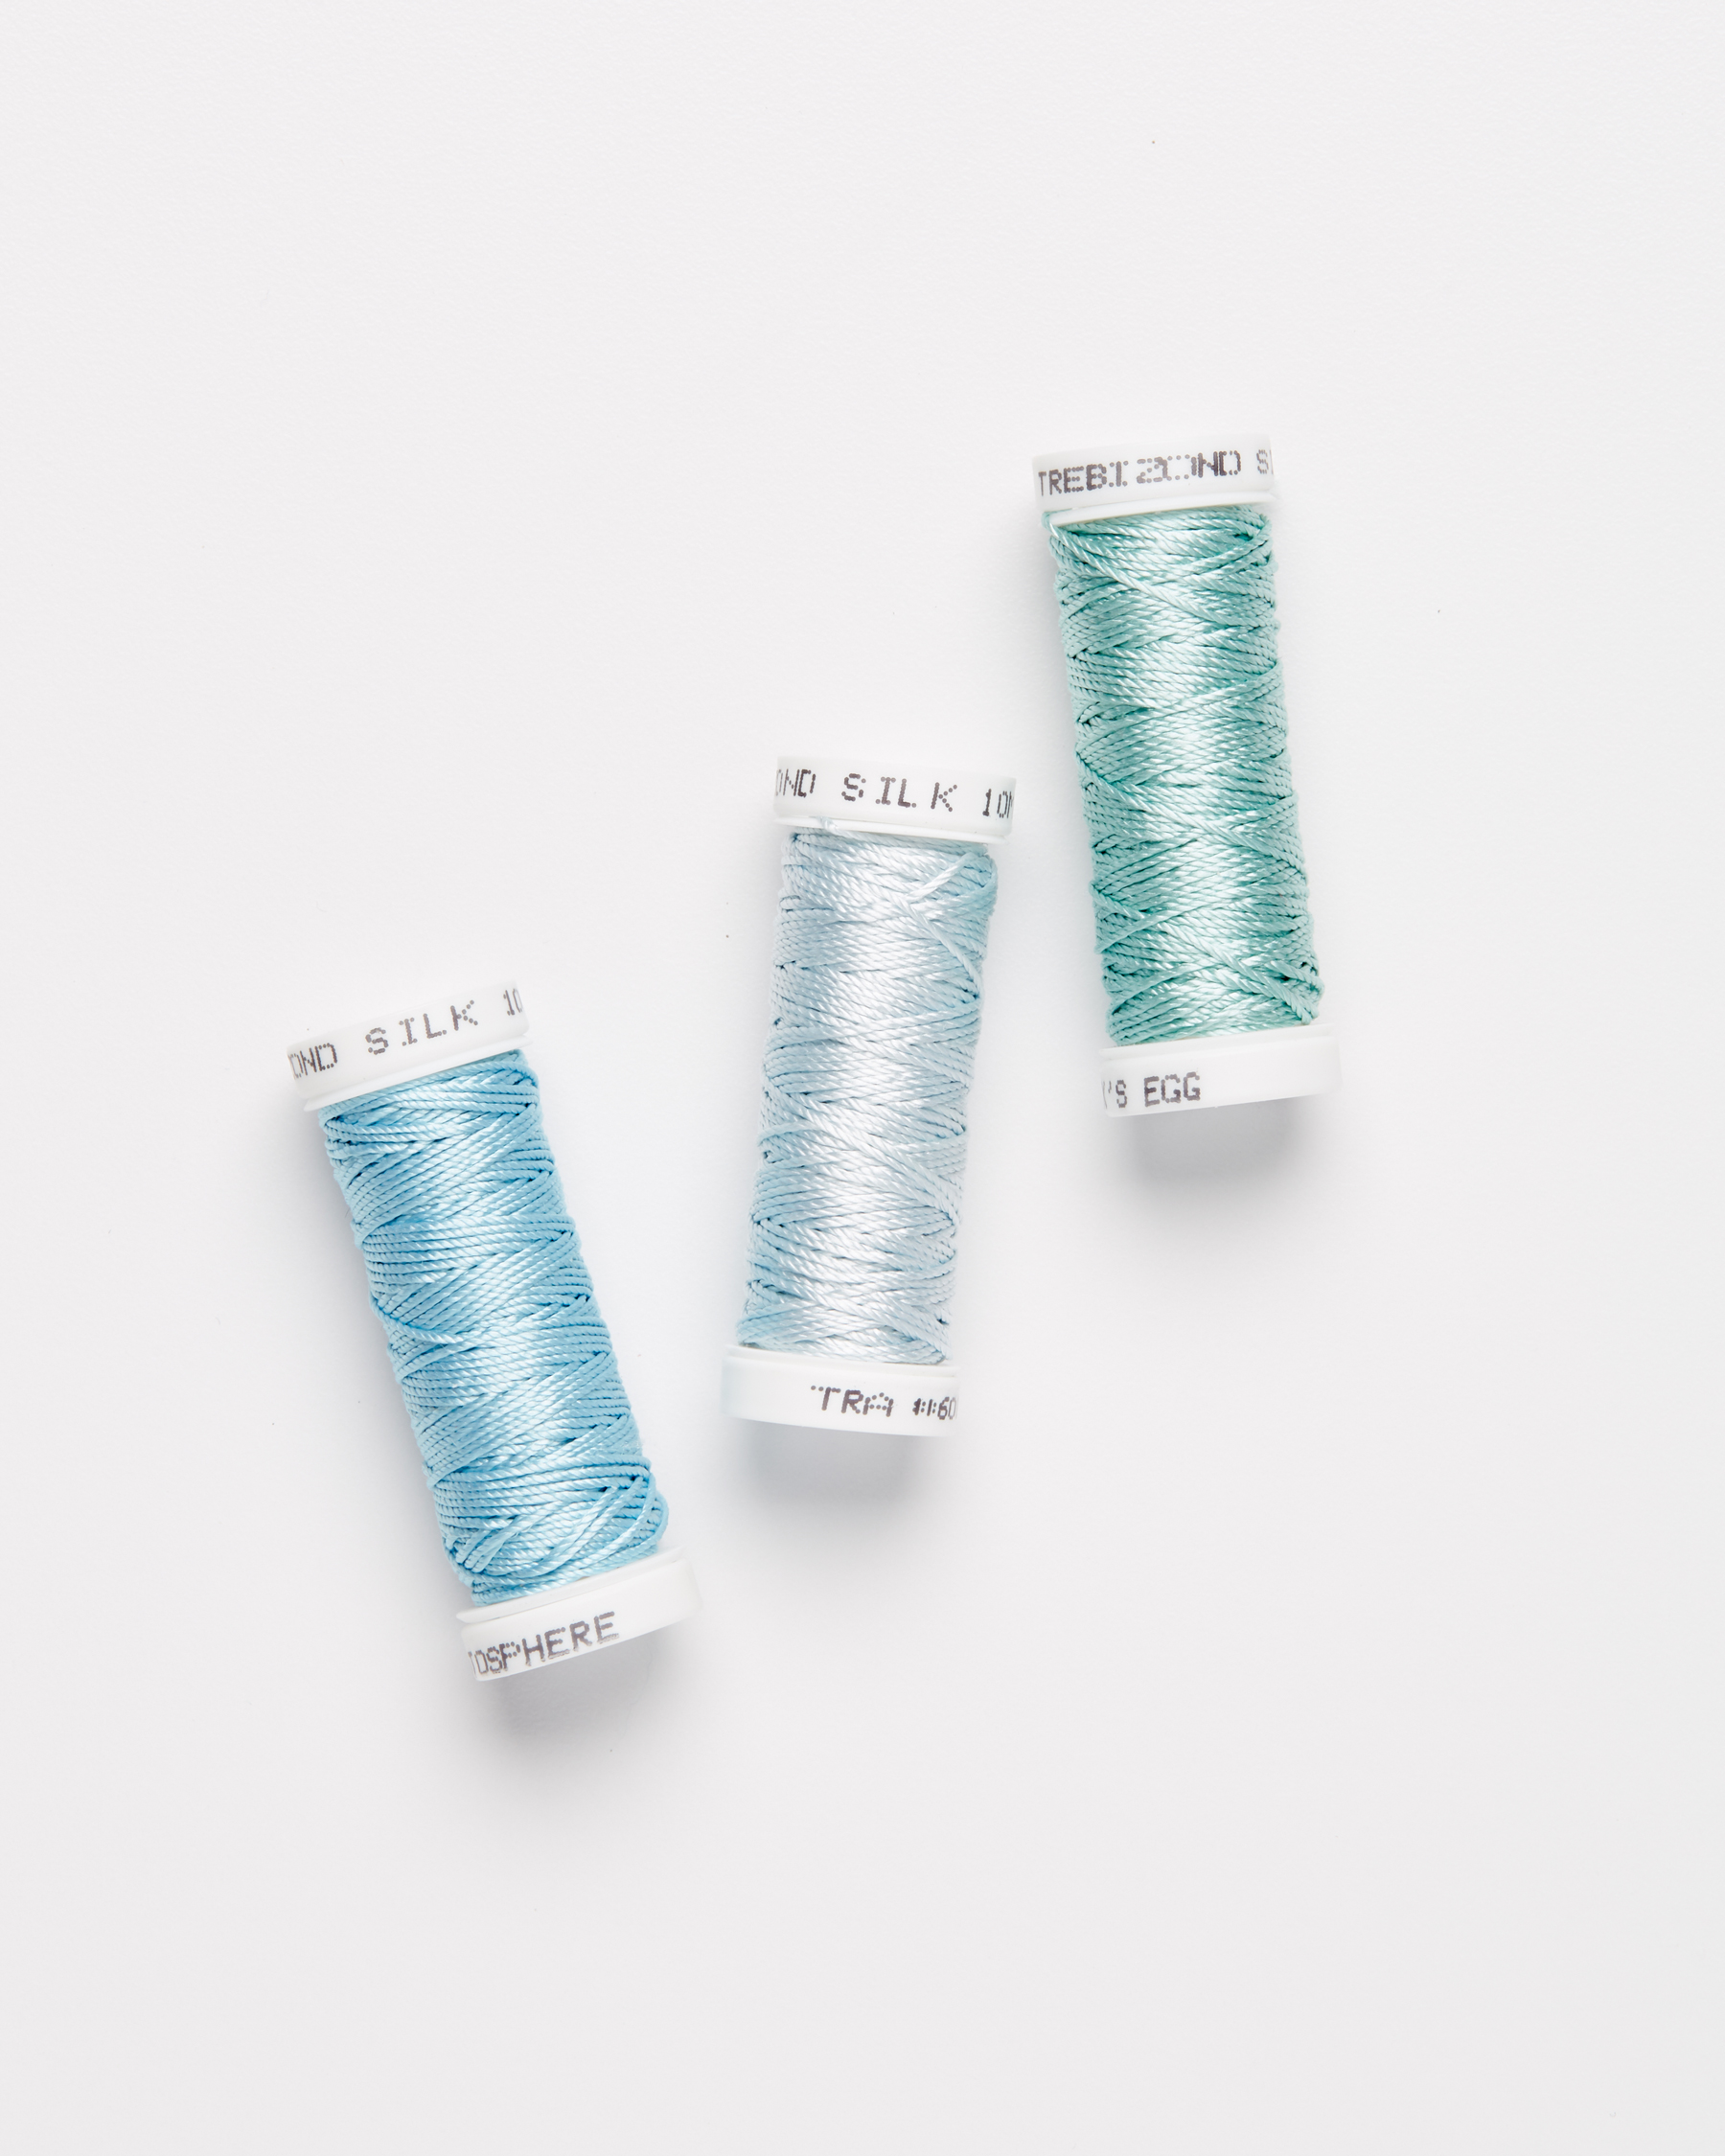 three spools of embroidery silk thread against a white background